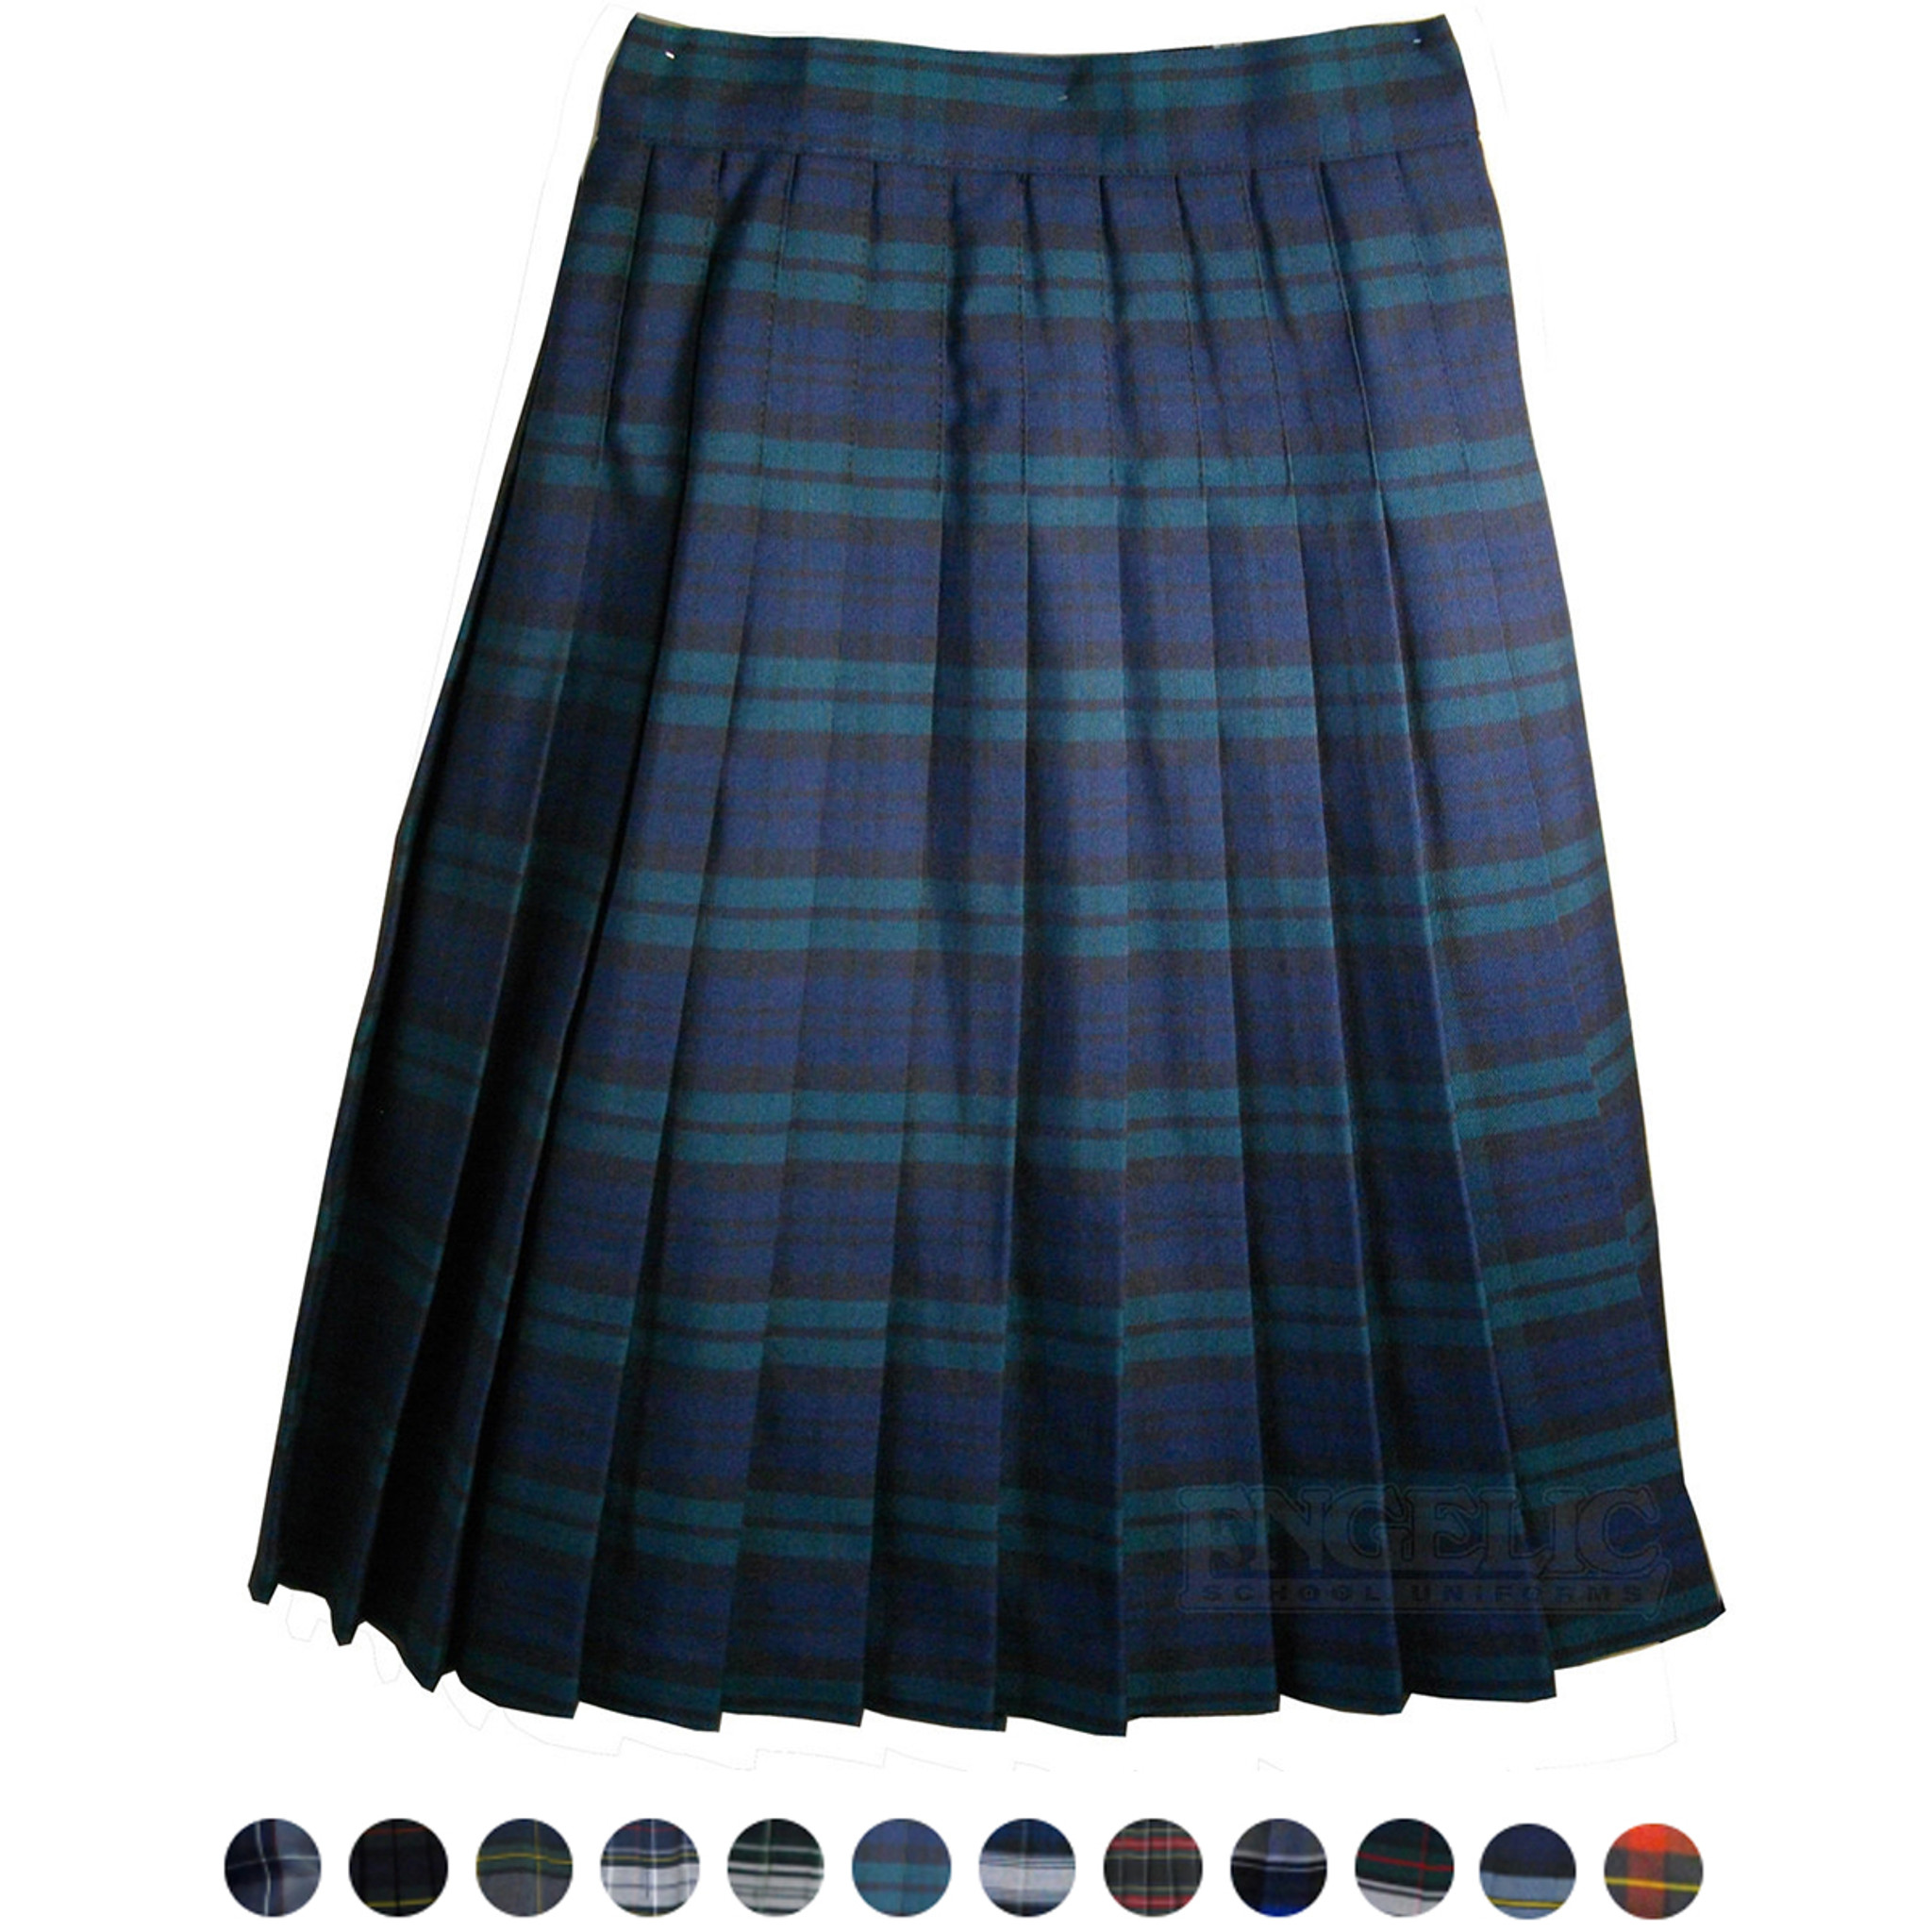 8d7f30d90f Girls School Uniform Plaid Pleated Skirt - Engelic Uniforms